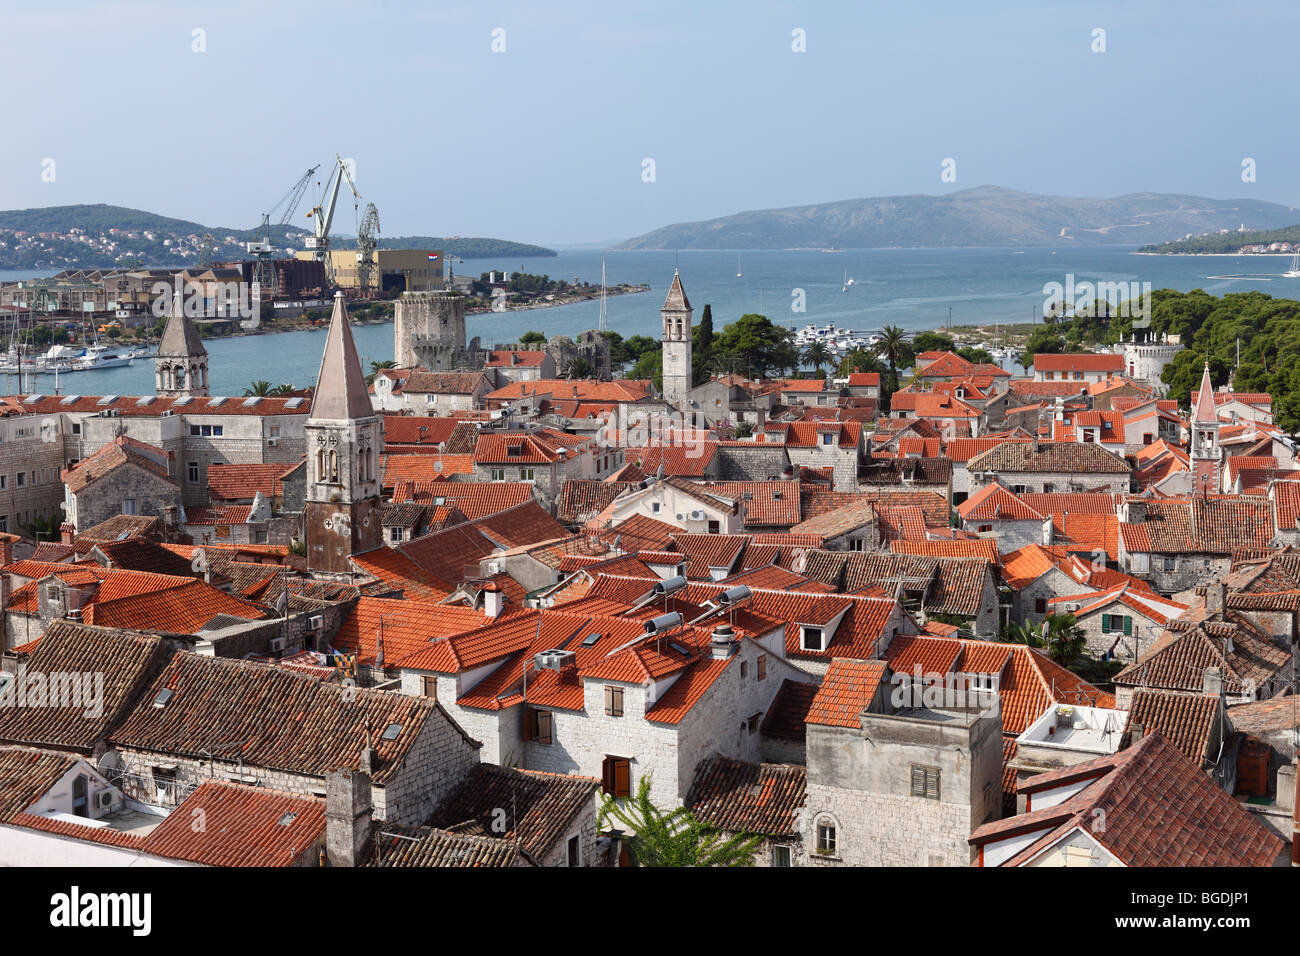 View from the spire of the cathedral, Trogir, Dalmatia, Adriatic, Croatia, Europe - Stock Image